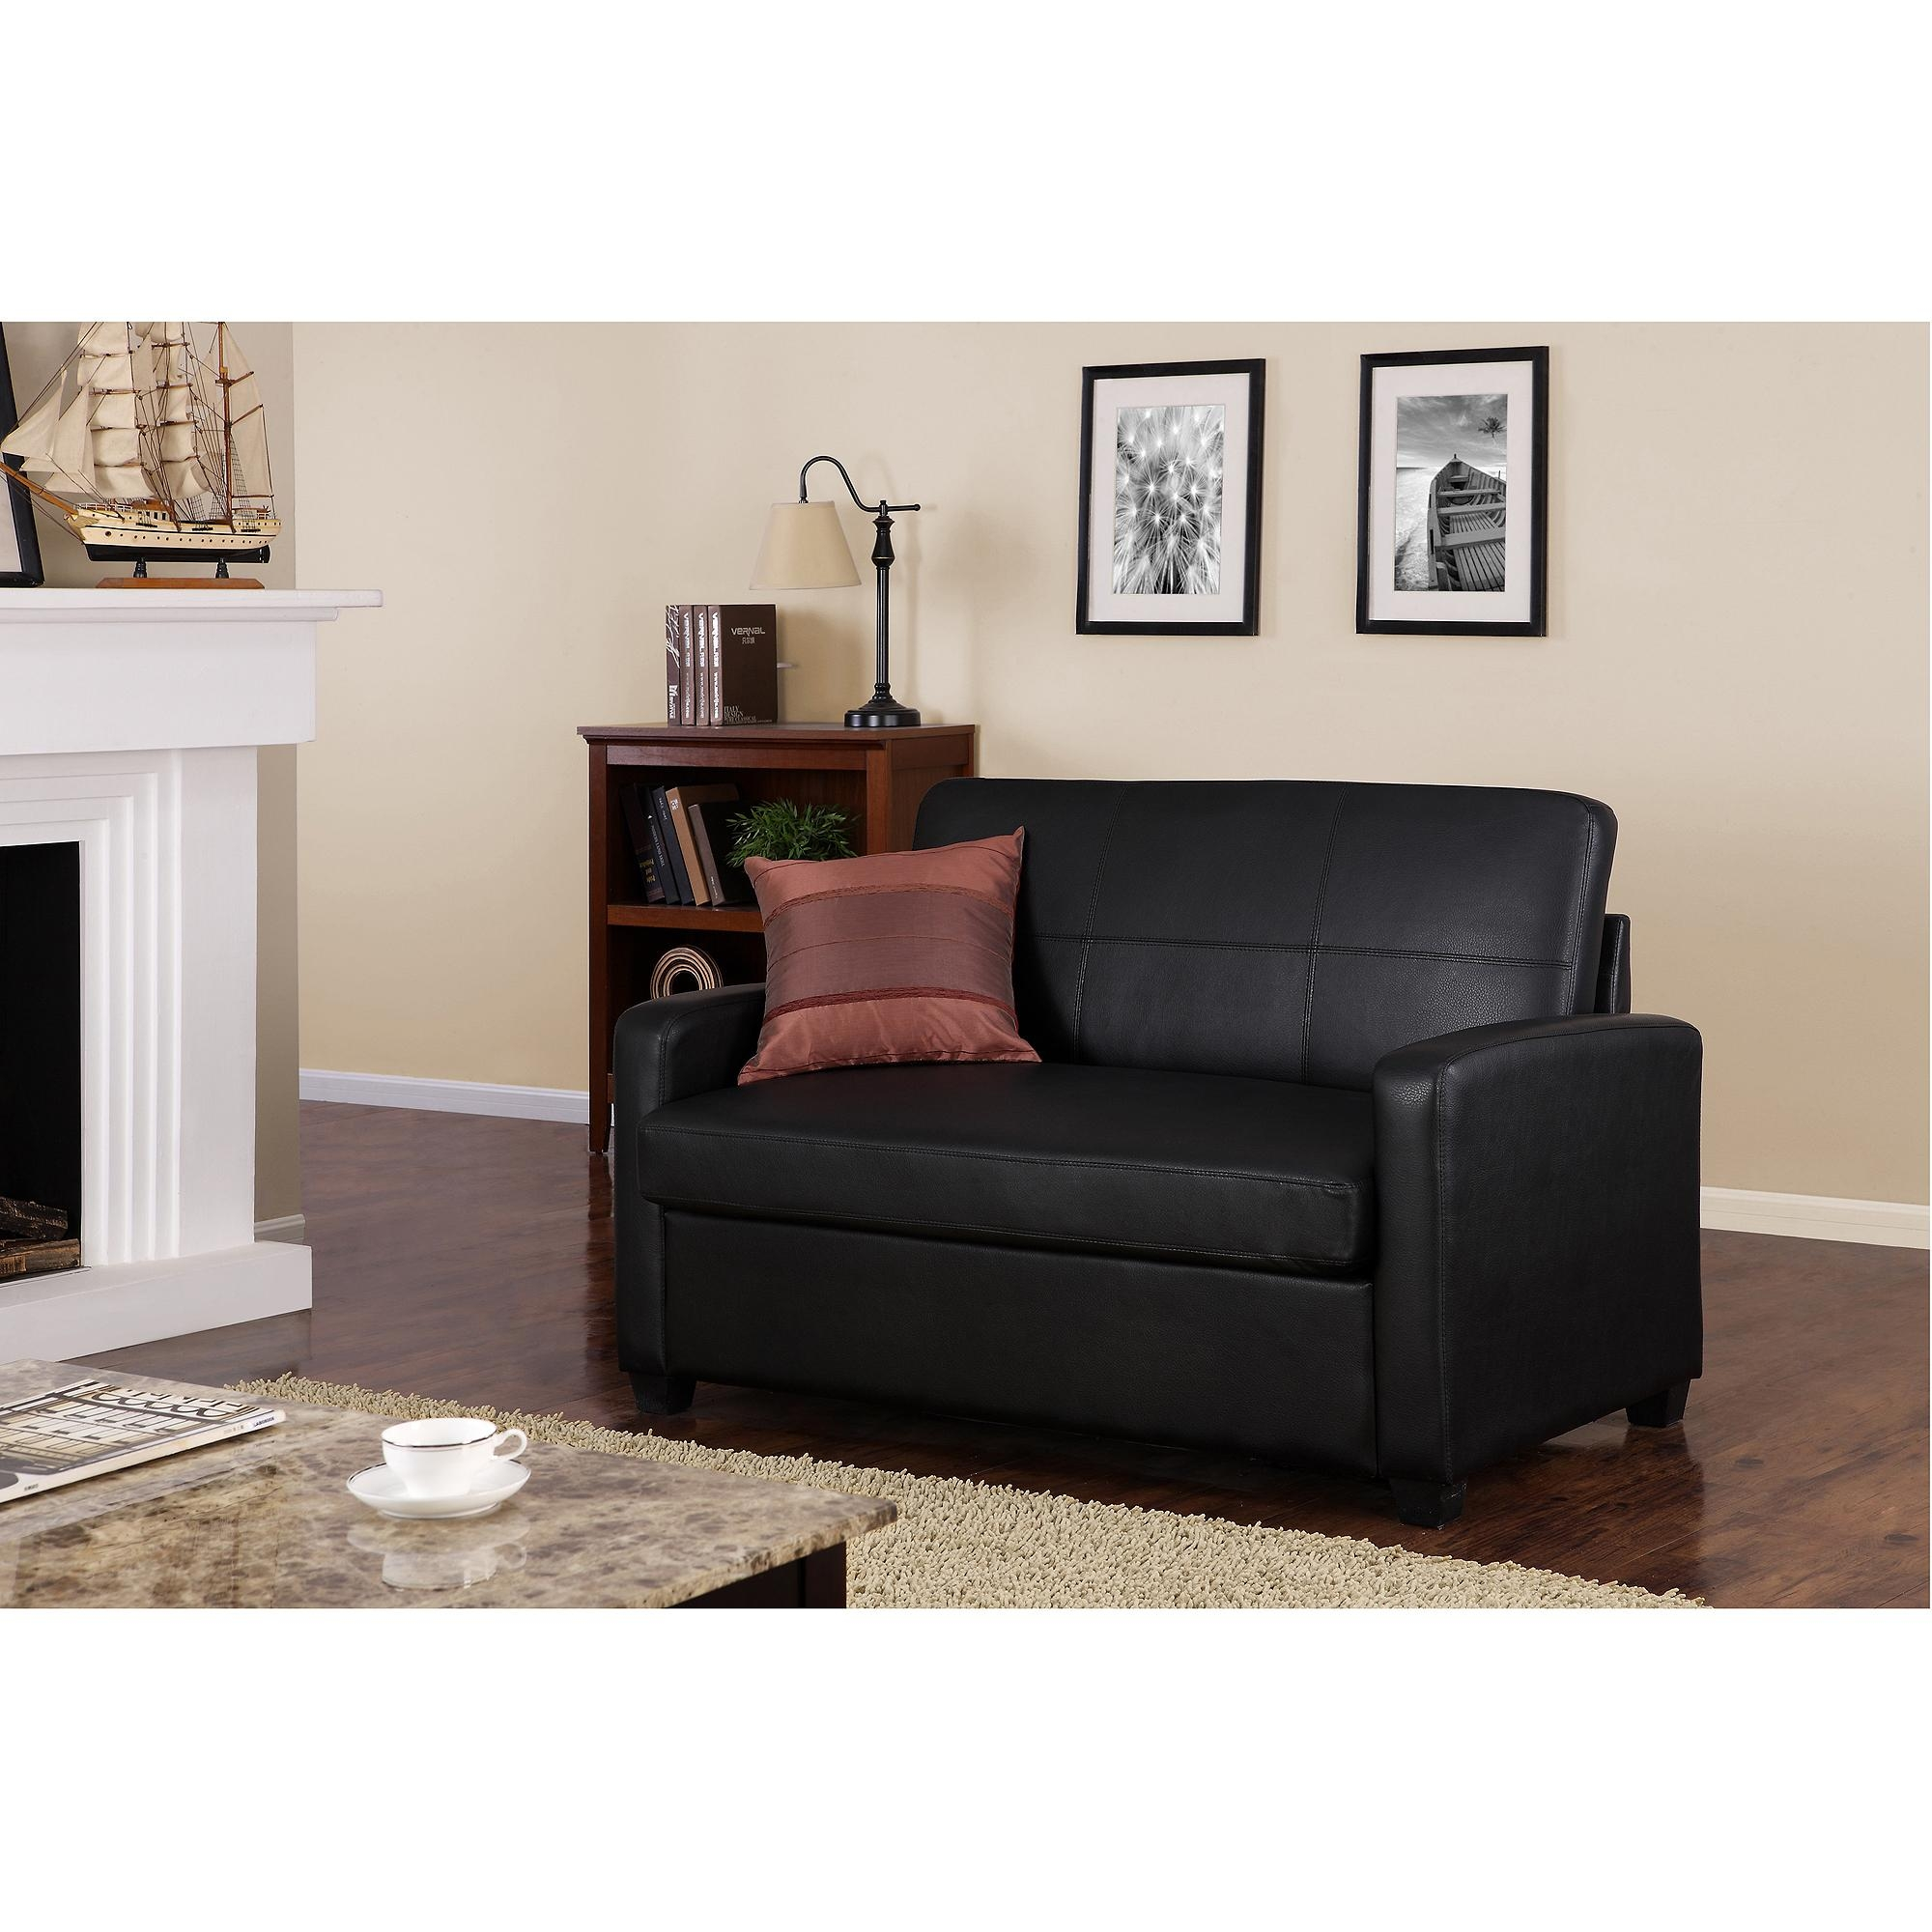 Sofas Center : Akali Sectional Sleeper Sofa Tufted Chaise Lounge Pertaining To Faux Leather Sleeper Sofas (View 6 of 20)